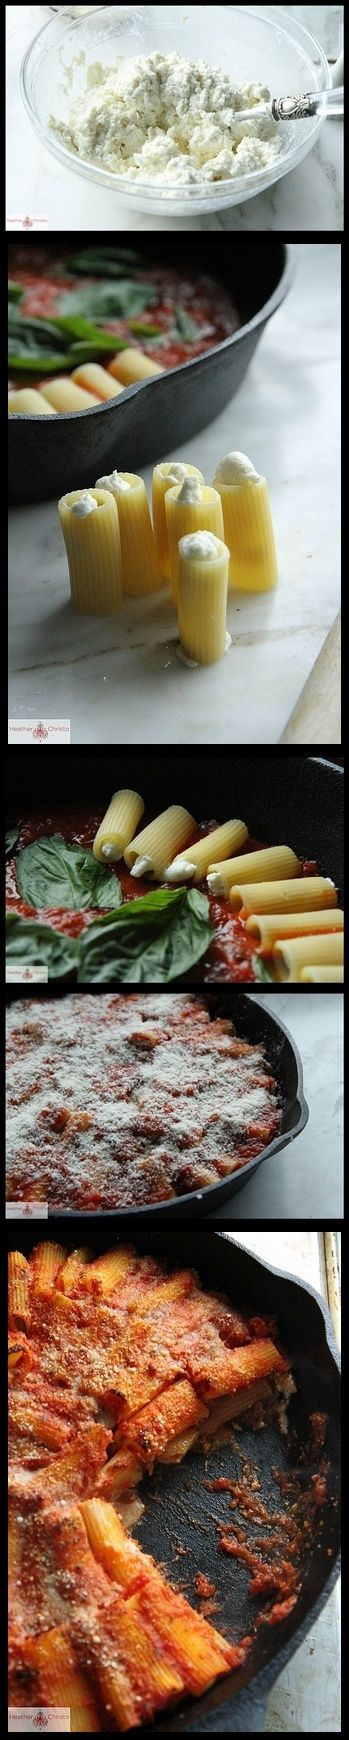 Skillet Baked Stuffed Rigatoni...did ricotta and mozza cheese instead ...